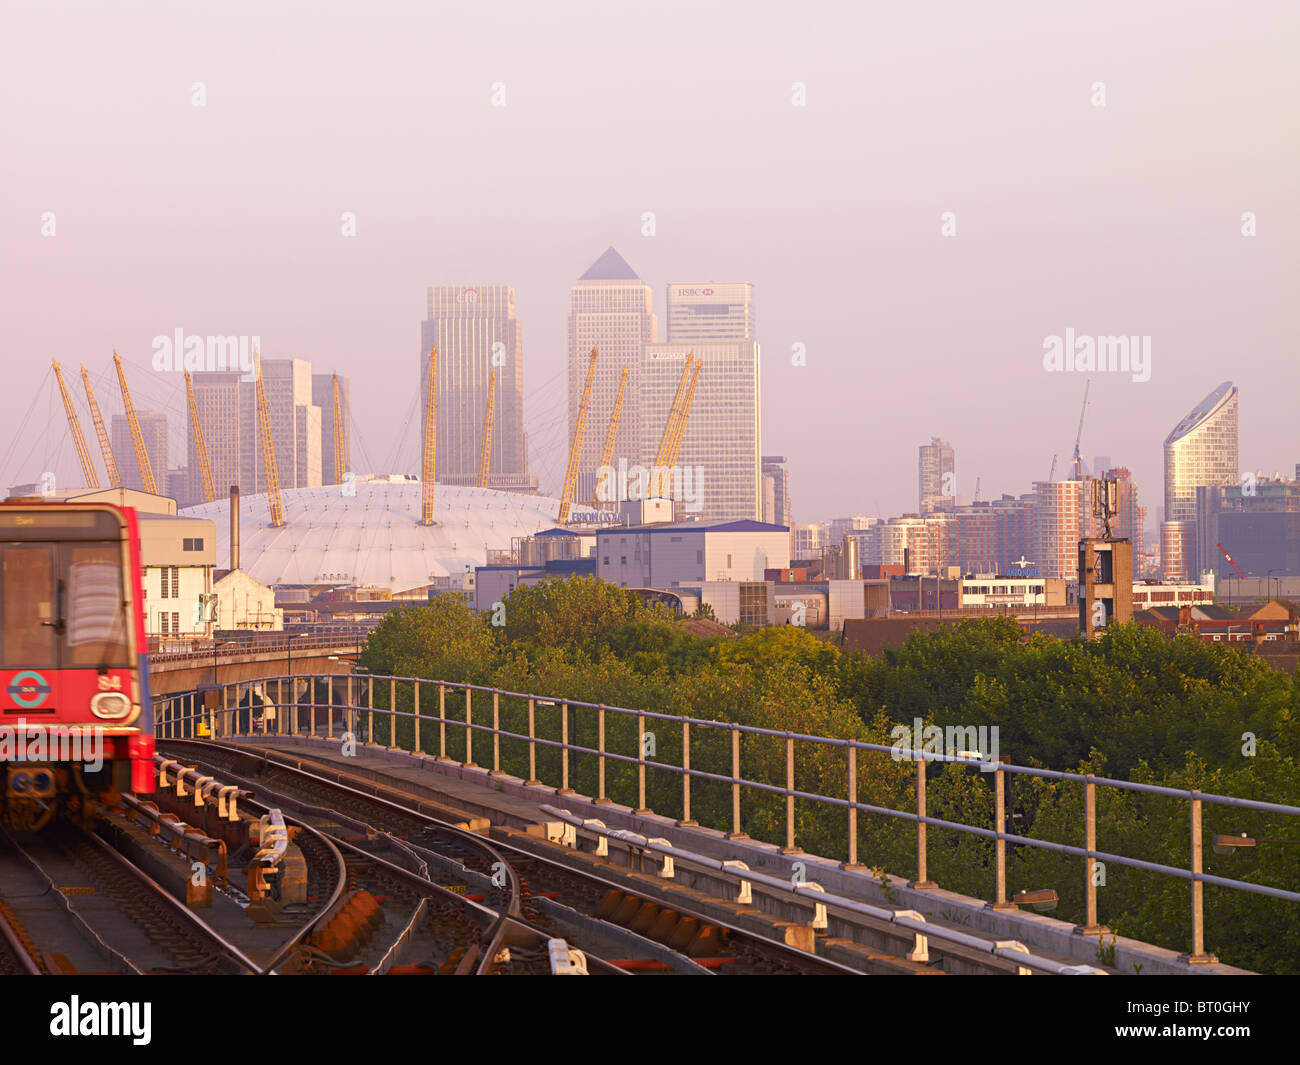 London DLR at sunrise with Docklands, Canary wharf and the Millennium Dome in the rear. - Stock Image